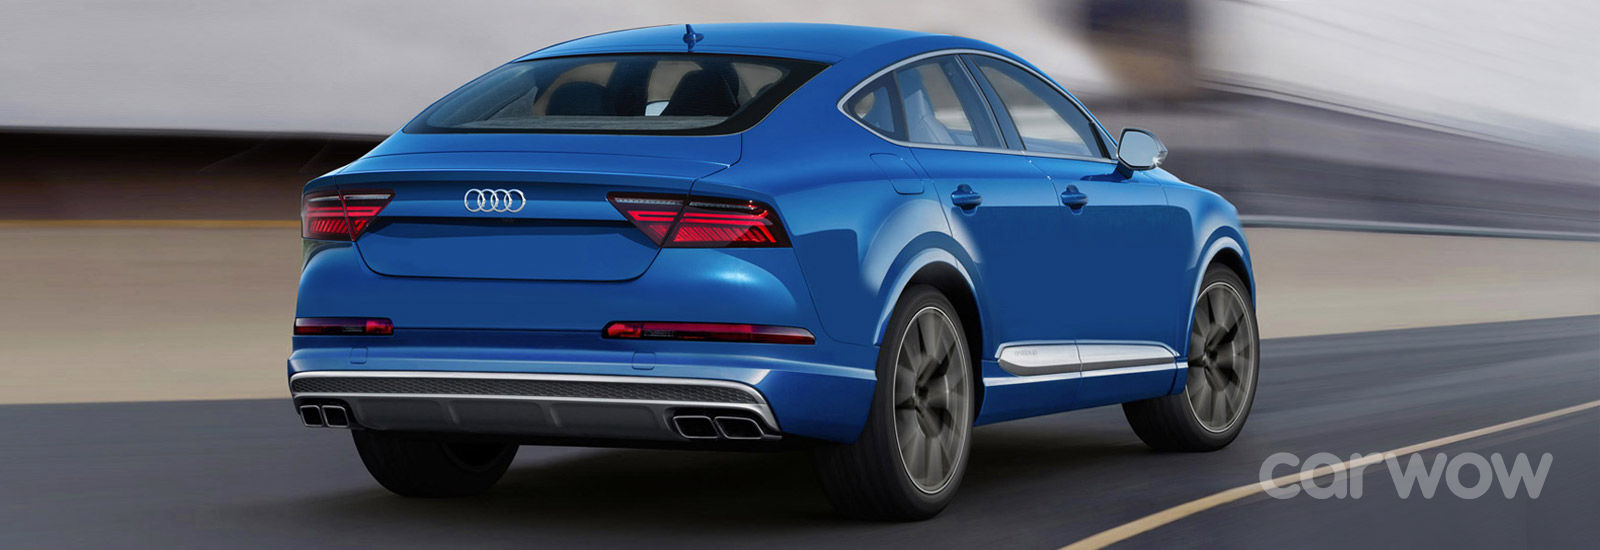 audi q8 price specs and release date carwow. Black Bedroom Furniture Sets. Home Design Ideas